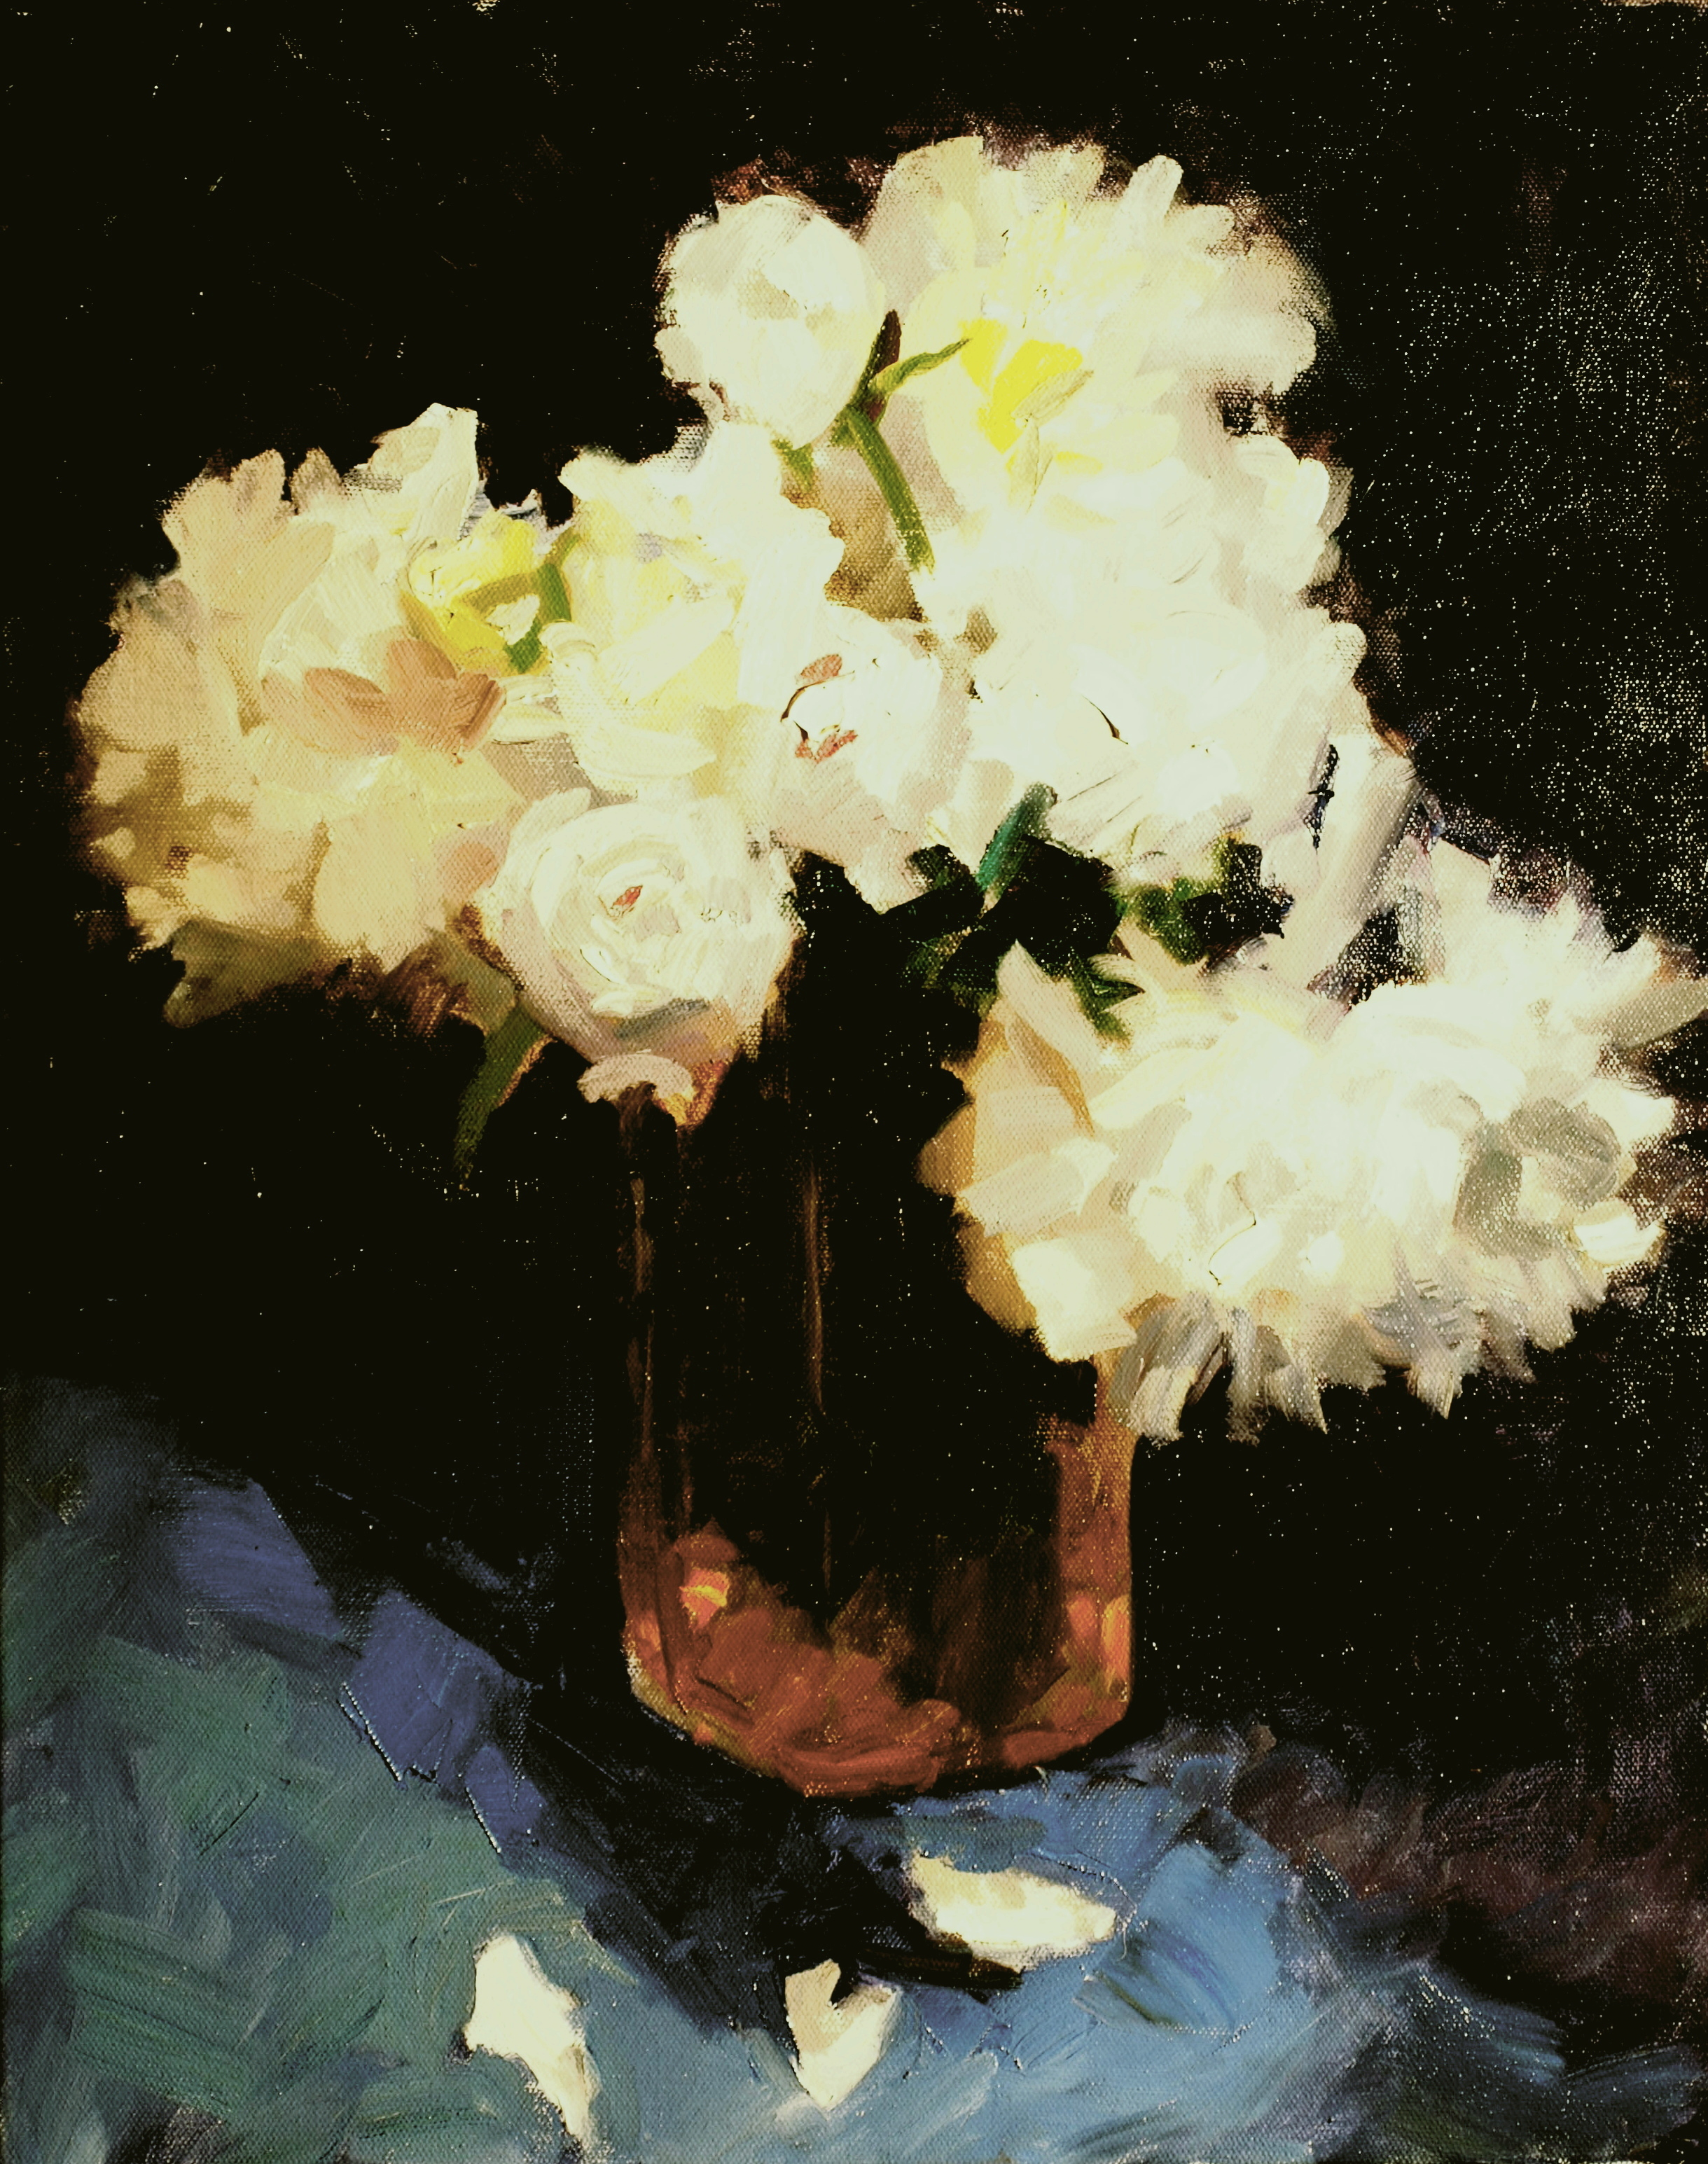 White Peonies, Oil on Canvas, 20 x 16 Inches, by Susan Grisell, $500